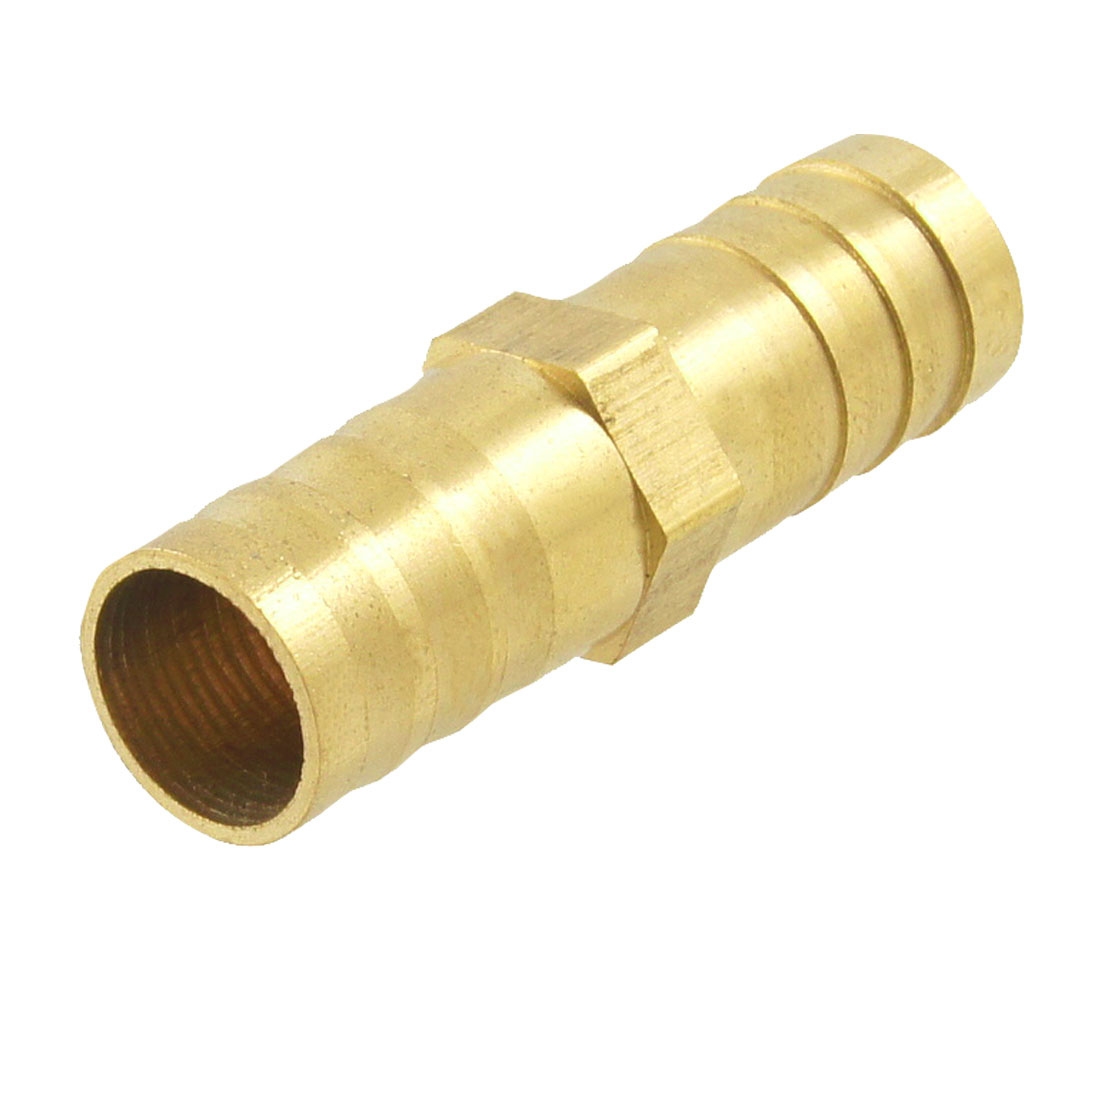 Brass Equal Straight Barb Connector Tube Fitting for Dual 12mm Inside Dia Hoses